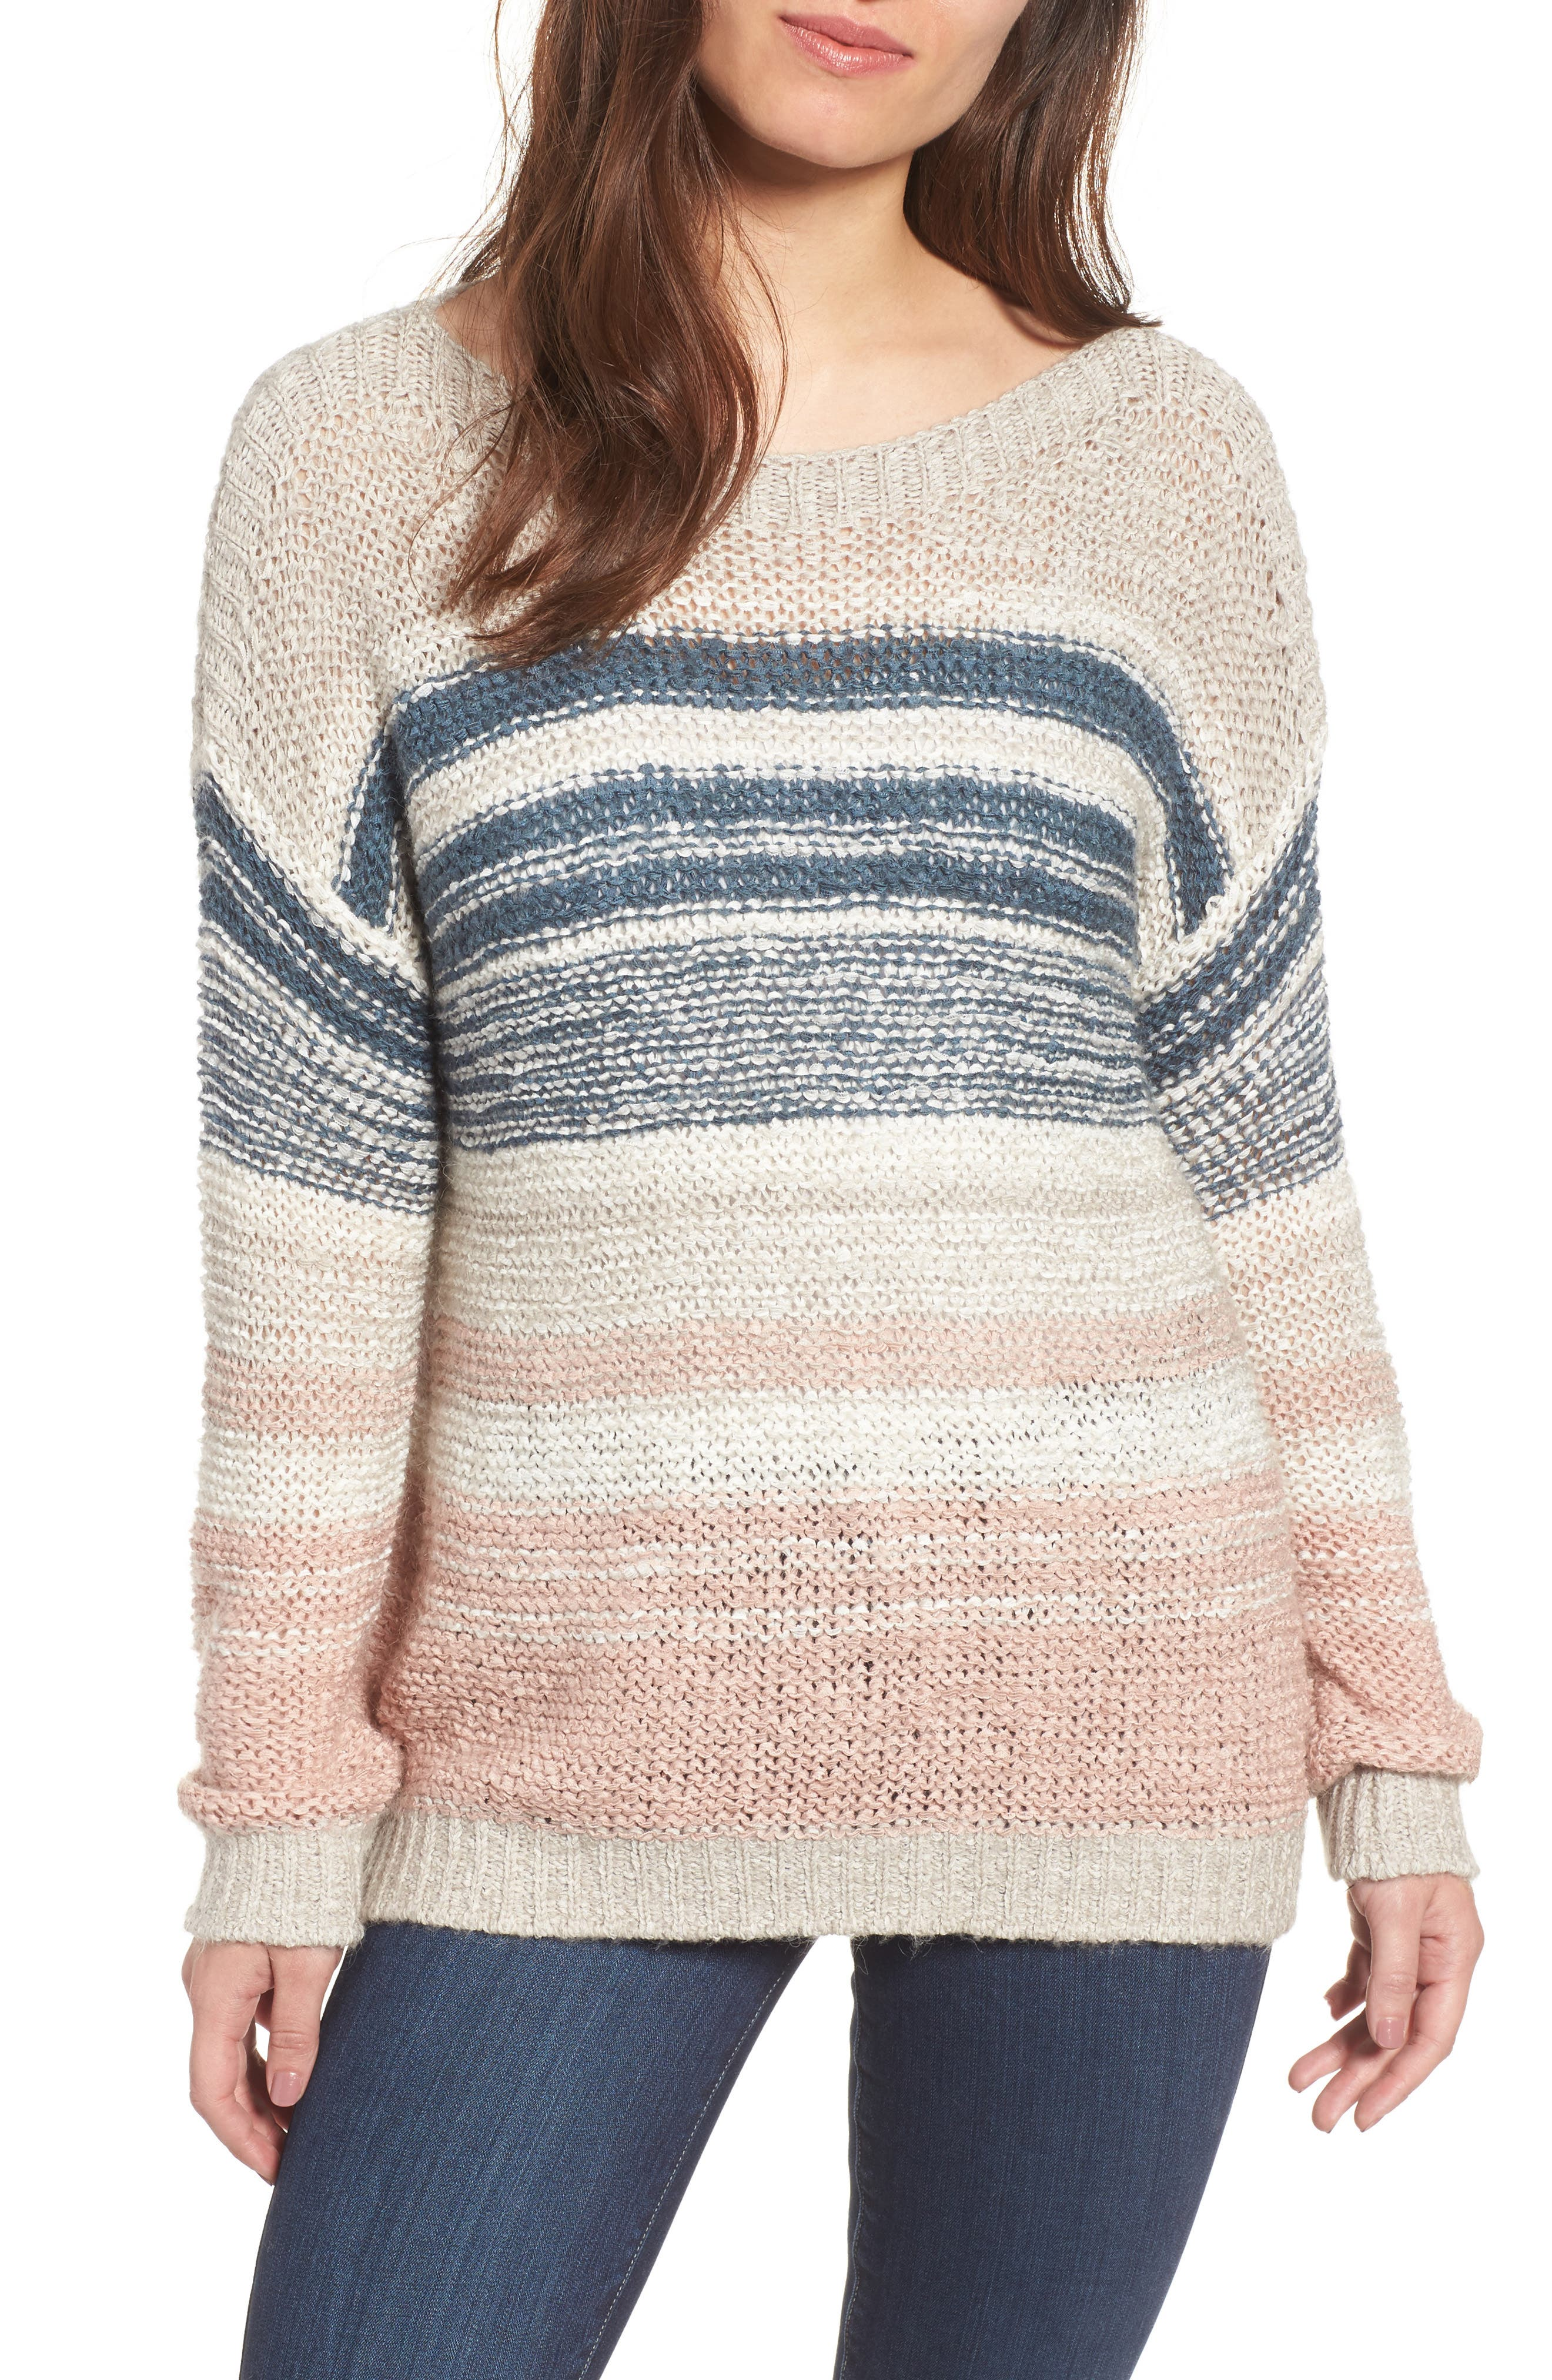 cupcakes and cashmere Reena Sweater